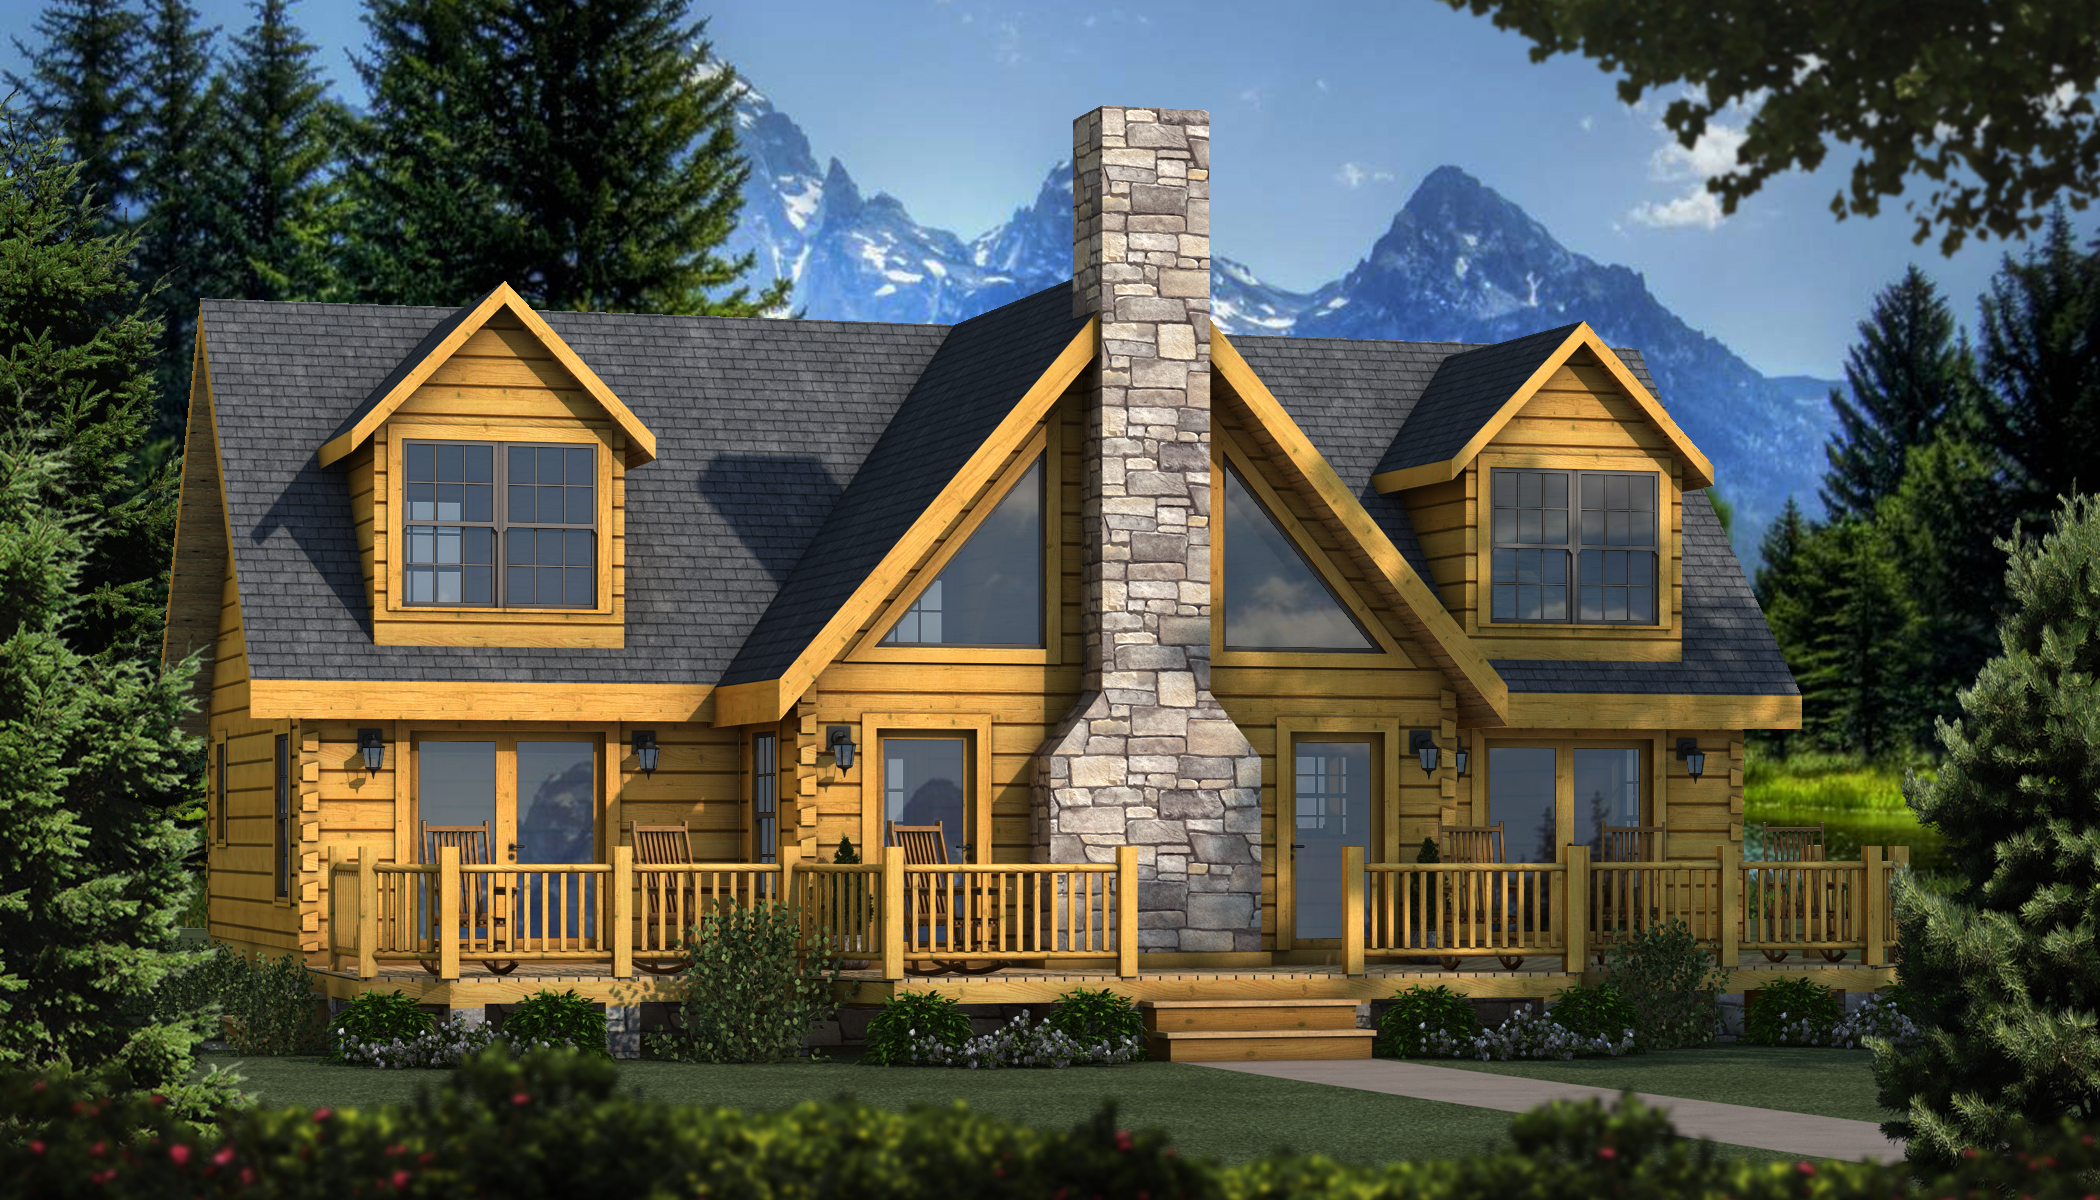 Grand lake plans information southland log homes for Cabin models plans